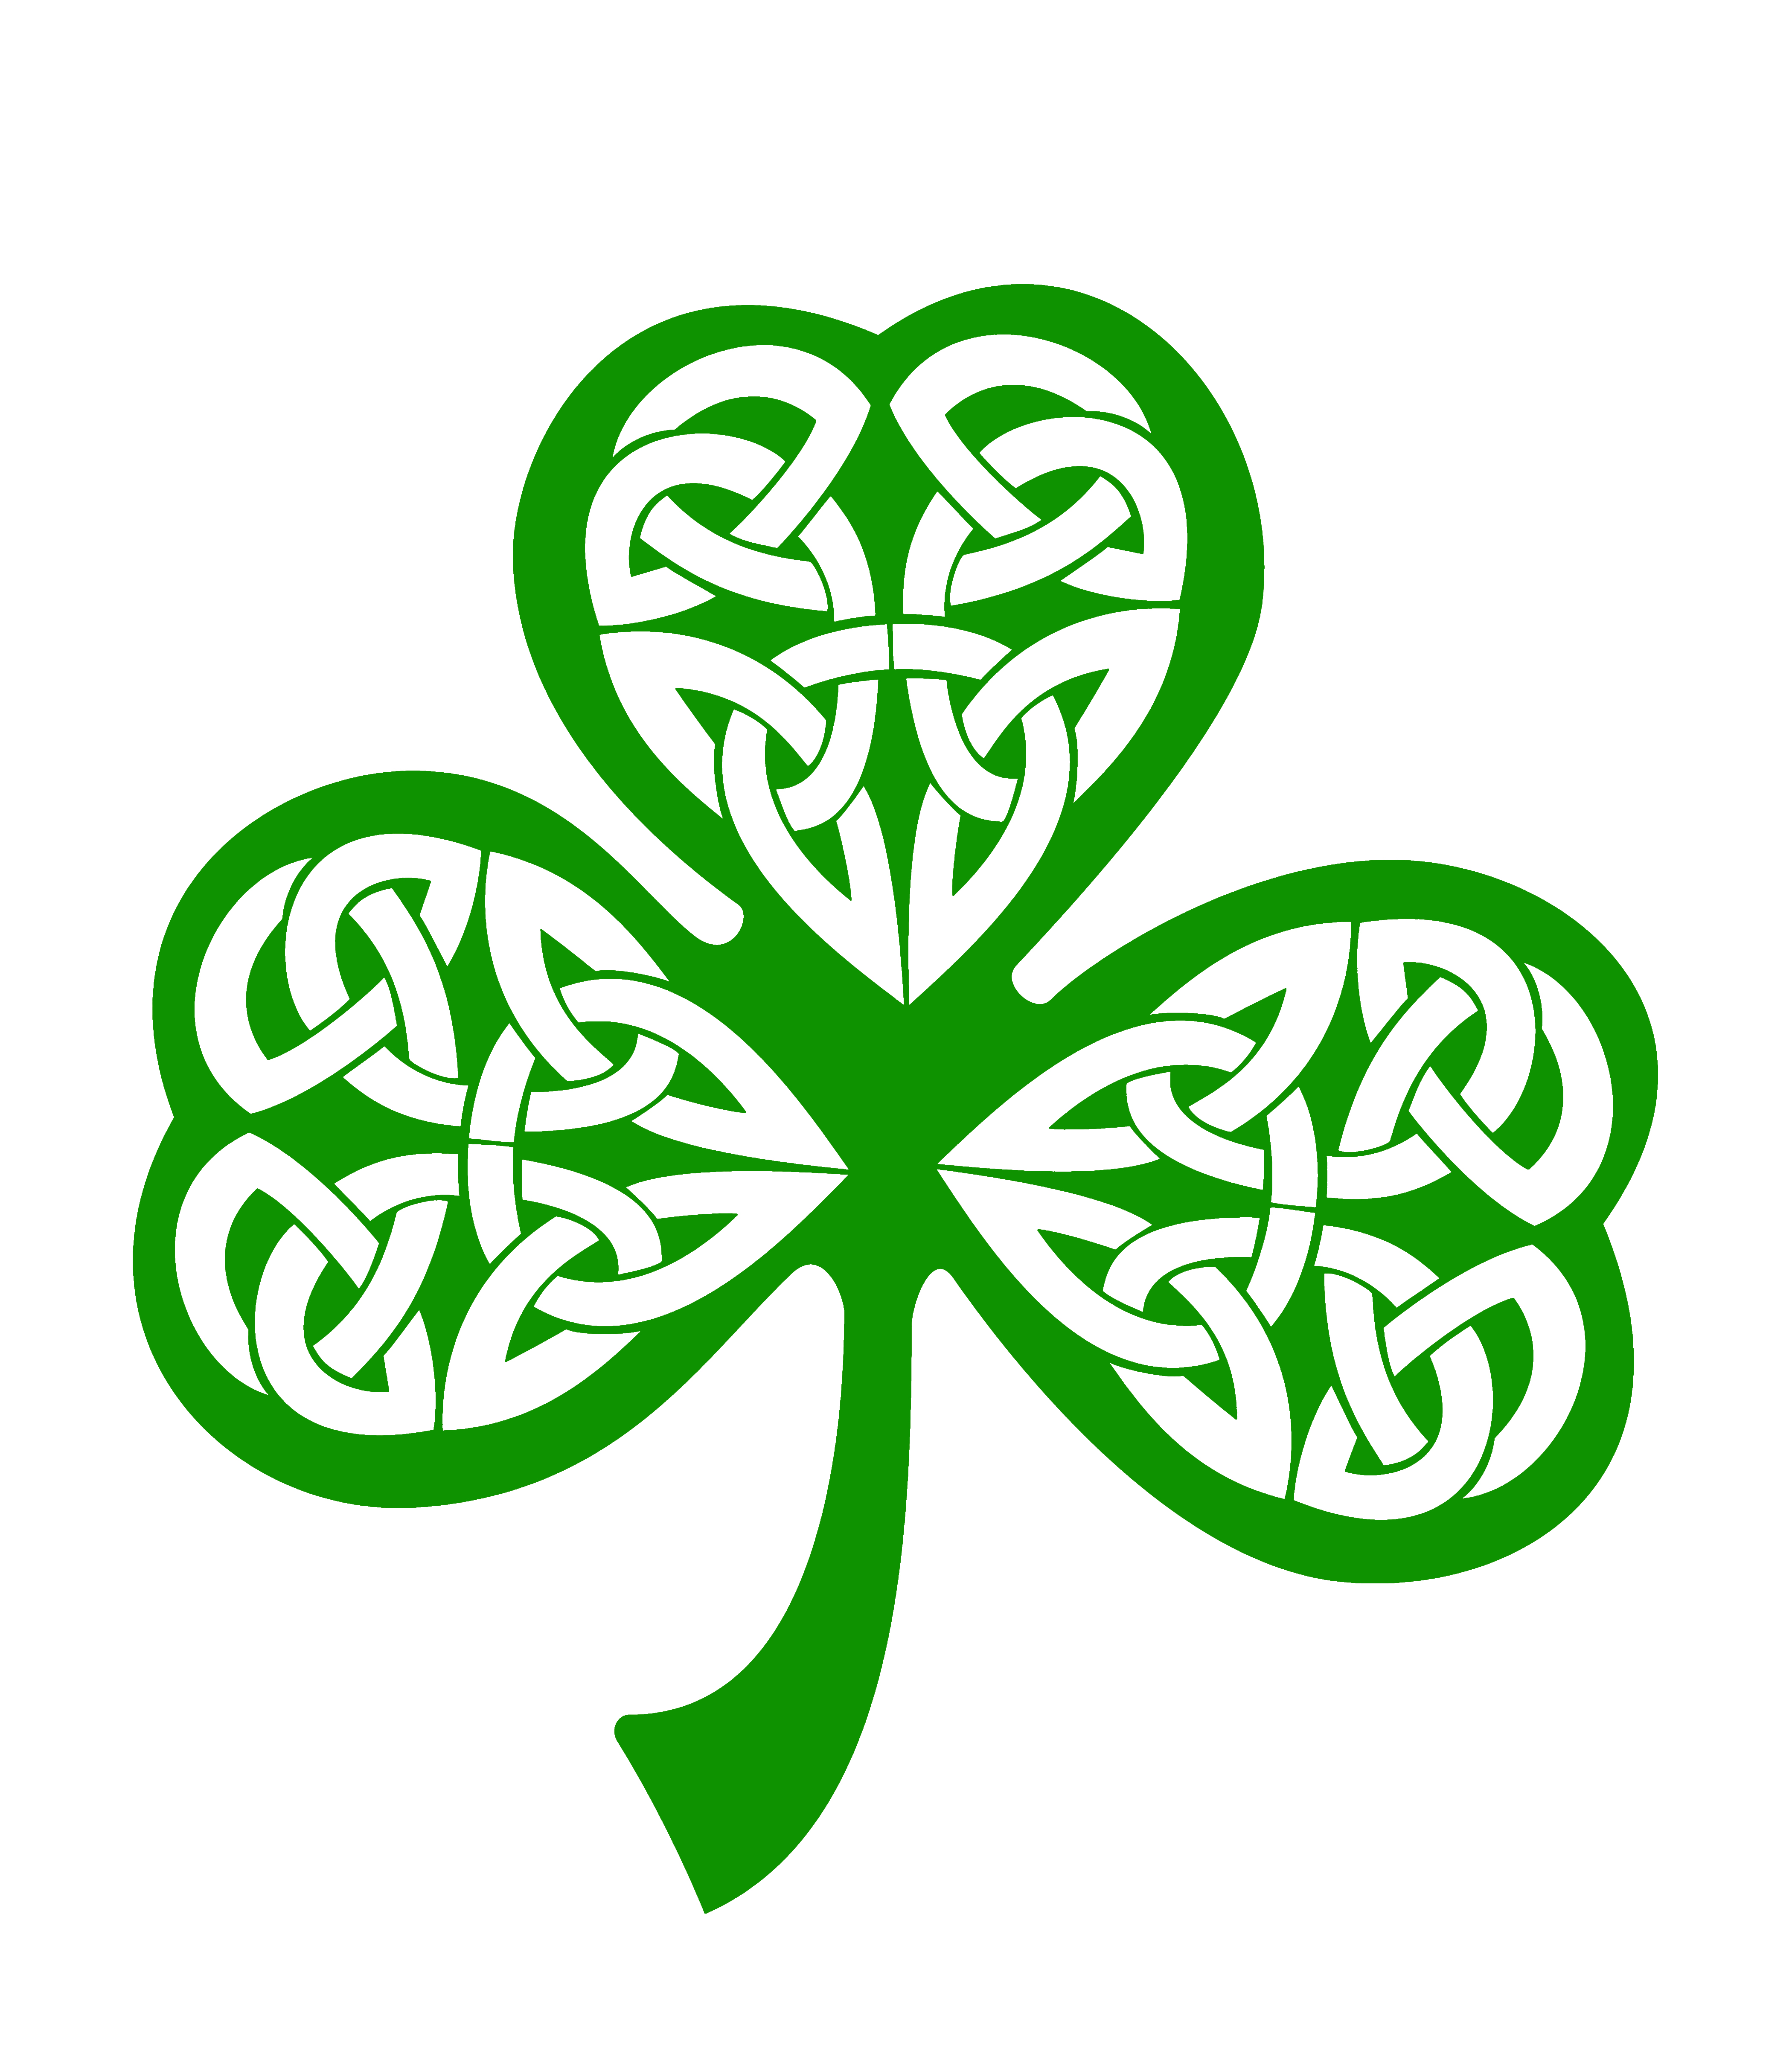 Irish Shamrocks Iphone Wallpaper Background And 4200x4800